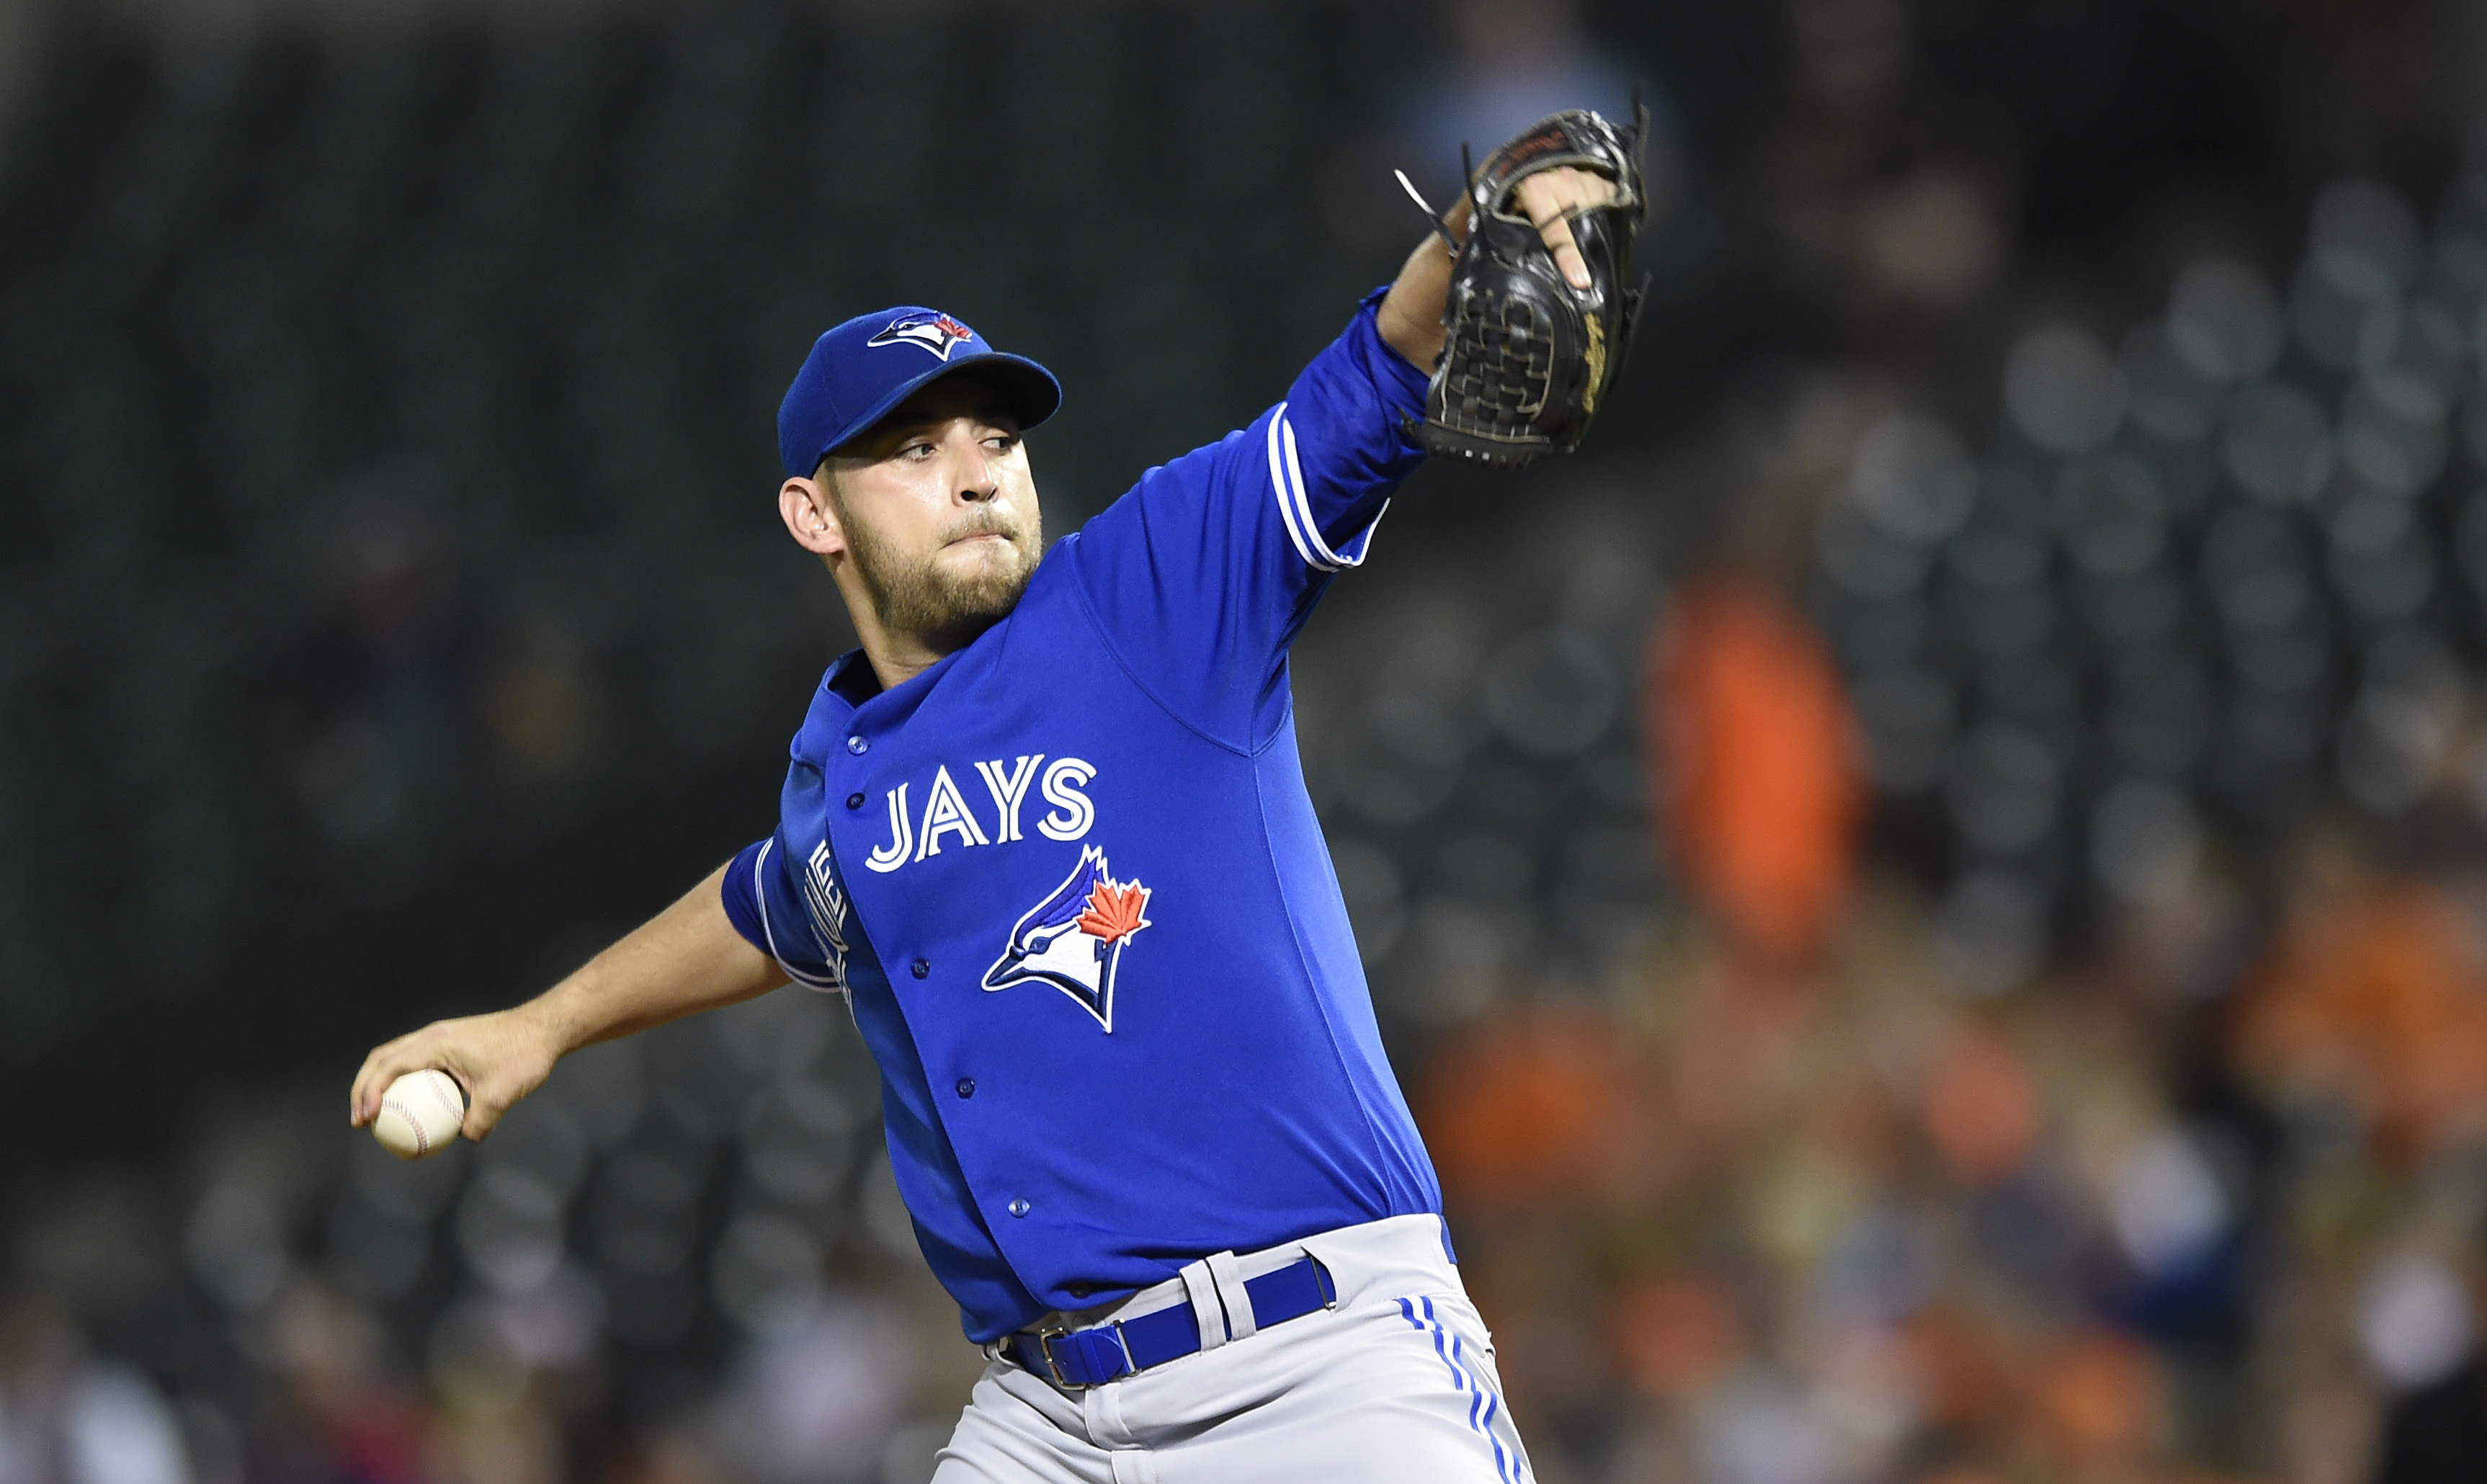 Toronto Blue Jays starting pitcher Marco Estrada delivers against the Baltimore Orioles in the first inning of a baseball game, Monday, Sept. 28, 2015, in Baltimore. (AP Photo/Gail Burton)